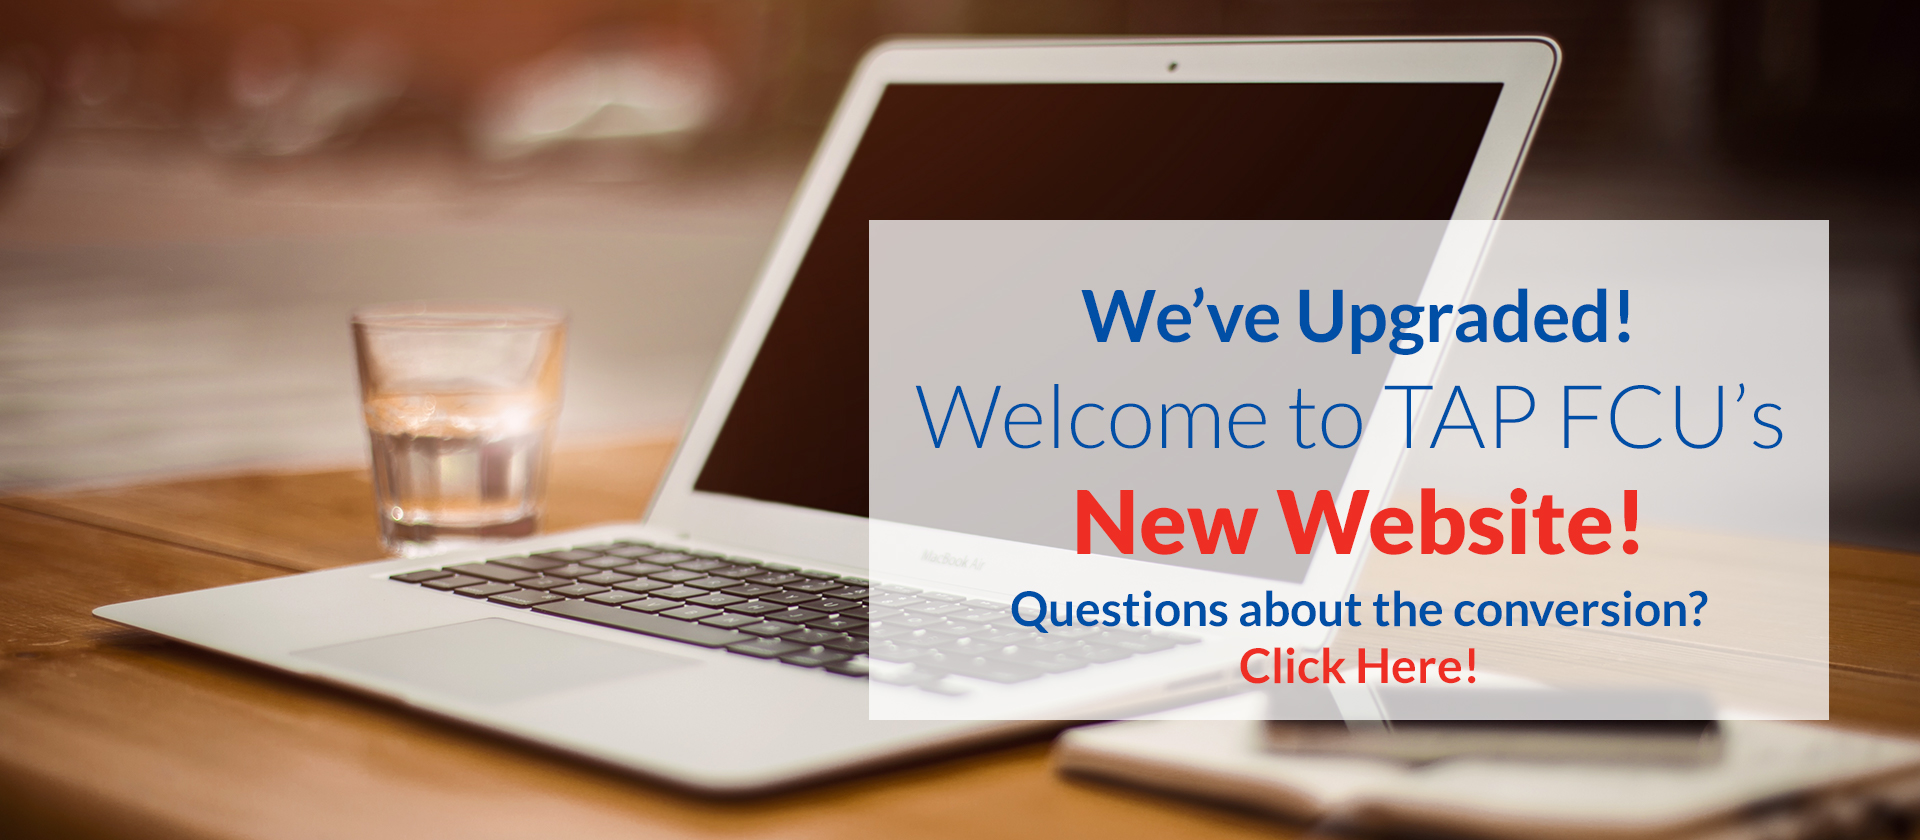 We've Upgraded! Welcome to TAP FCU's New Website! Questions about the conversion? Click Here!